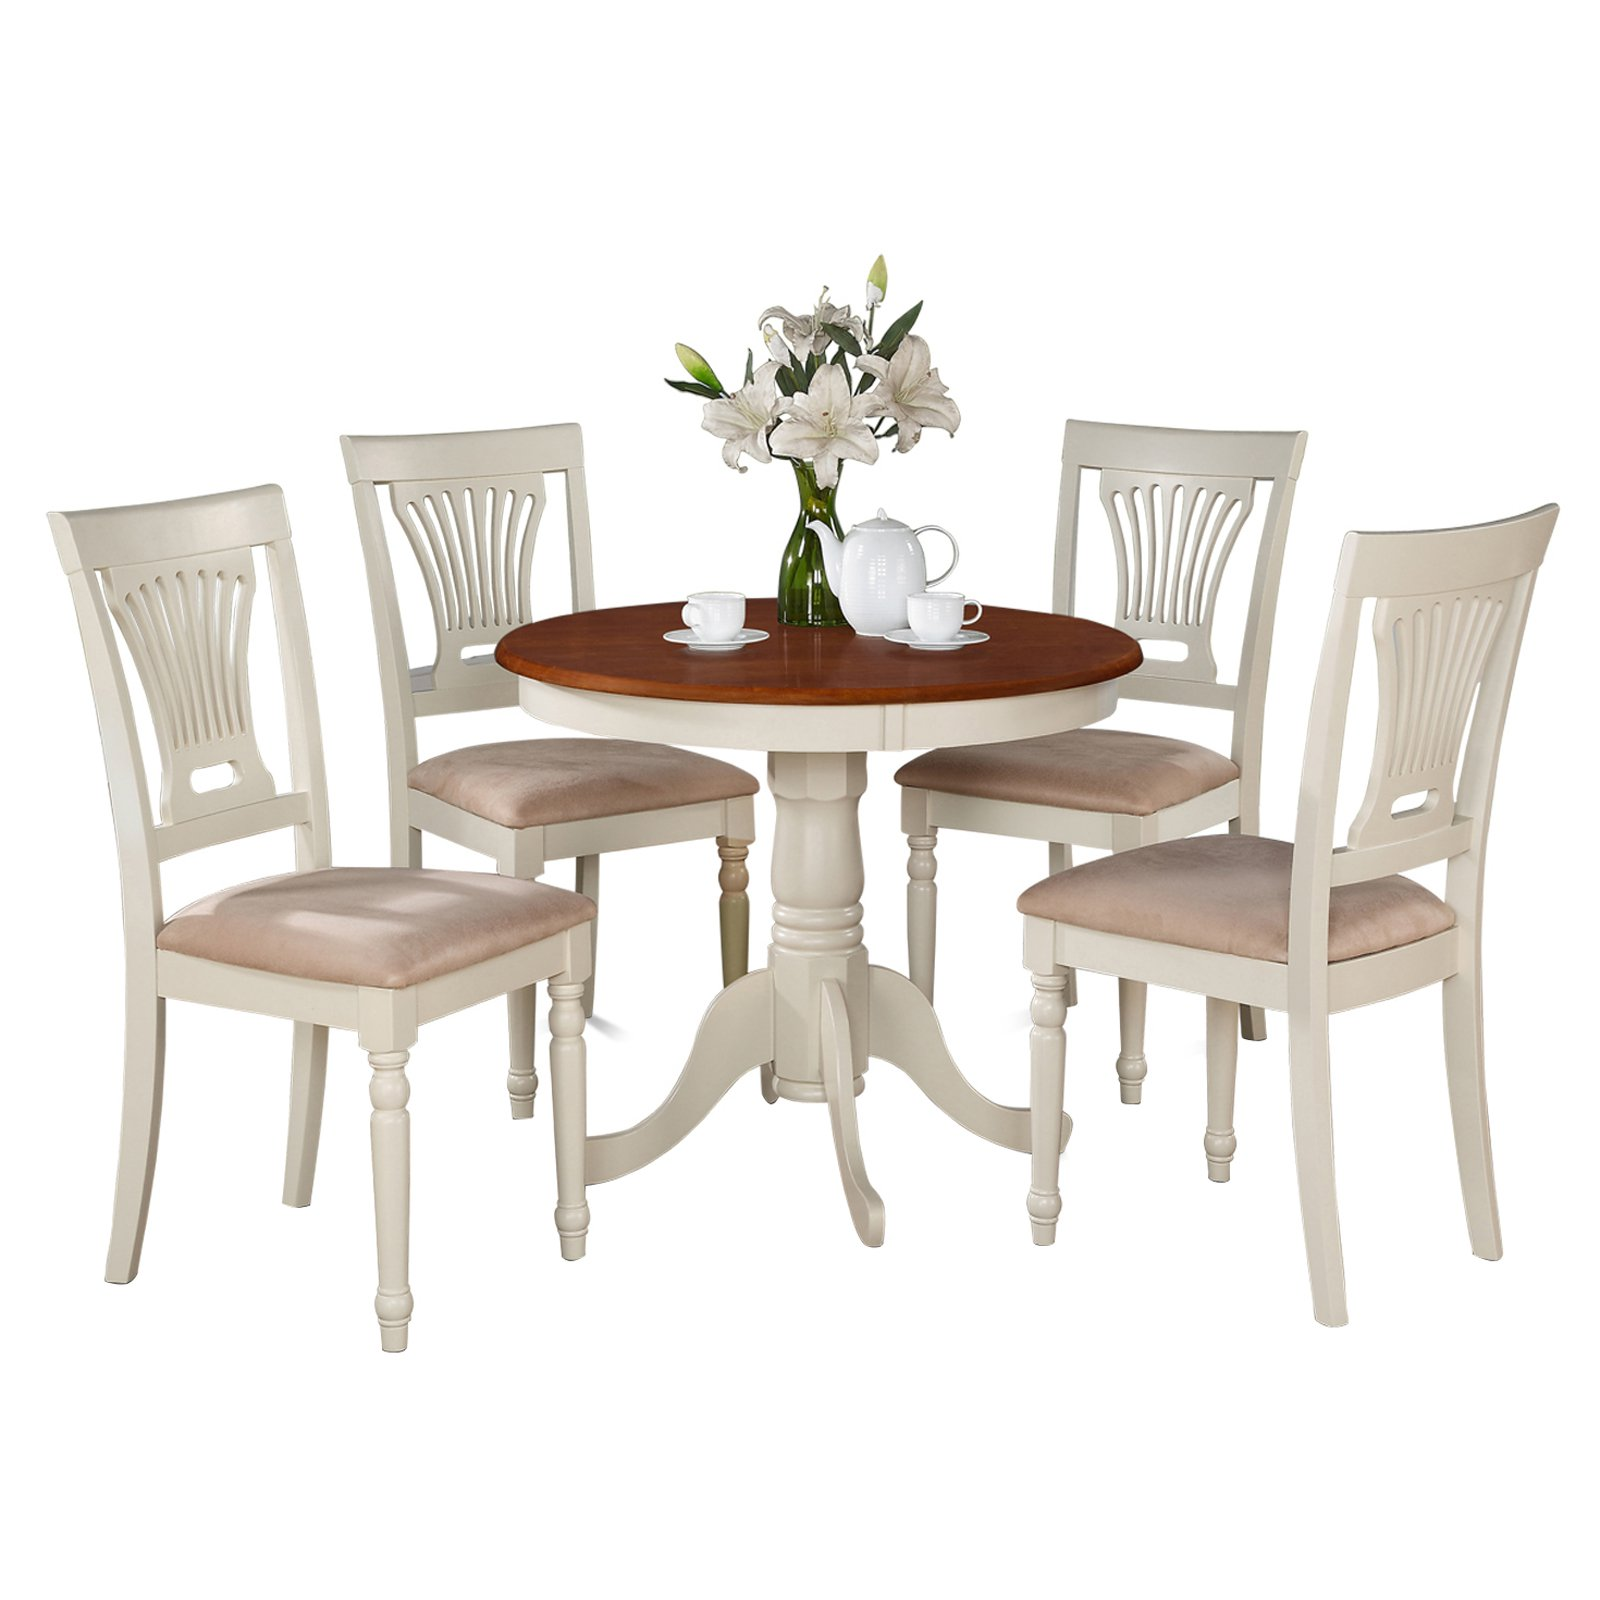 East West Furniture Antique 5 Piece Pedestal Round Dining Table Set with Plainville Microfiber Seat Chairs